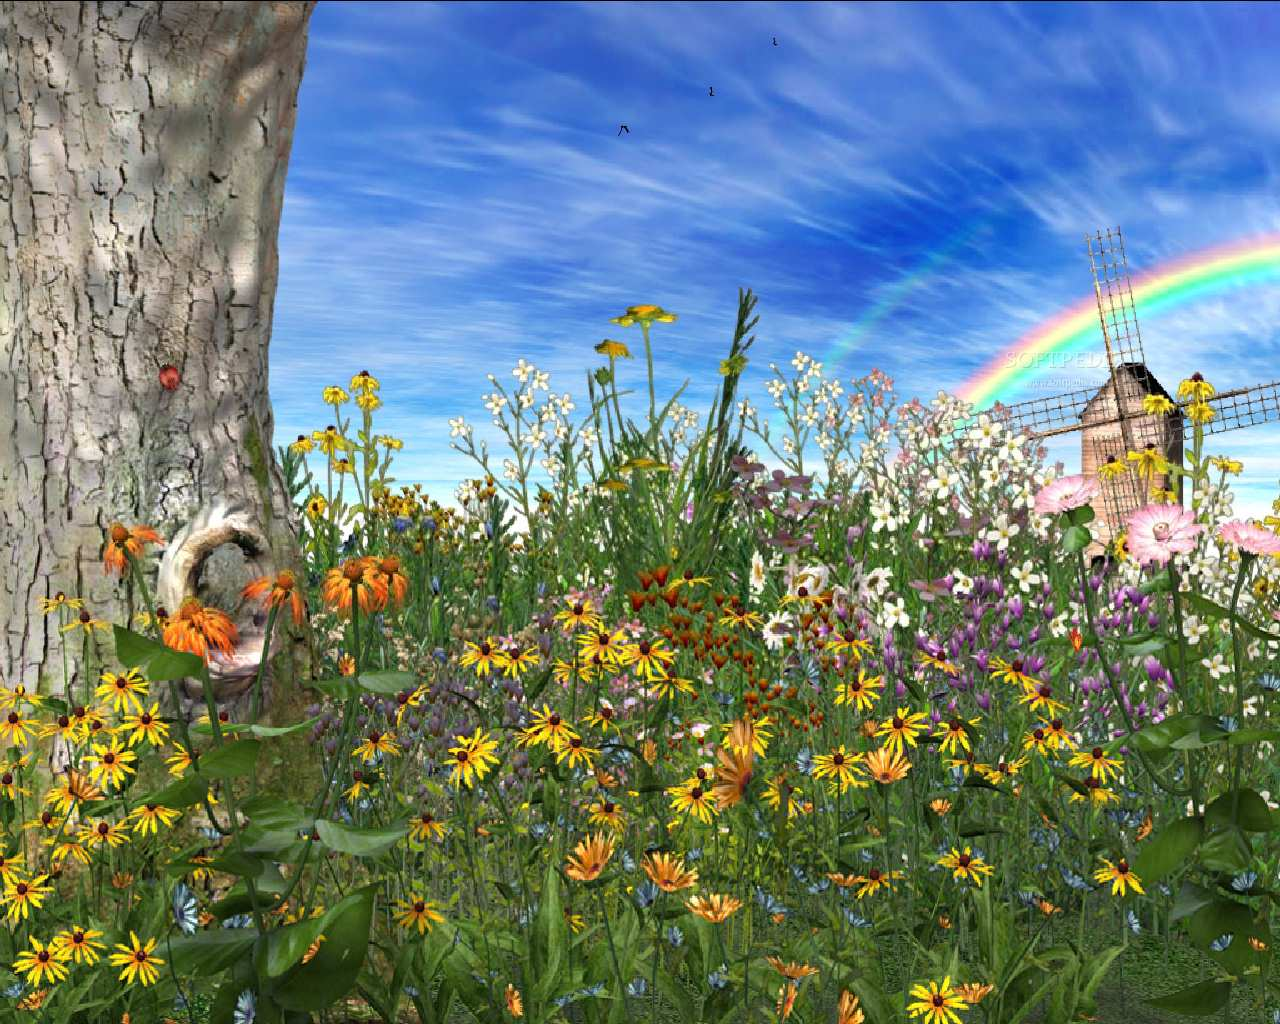 Spring time - animated screensaver - this is the image displayed by